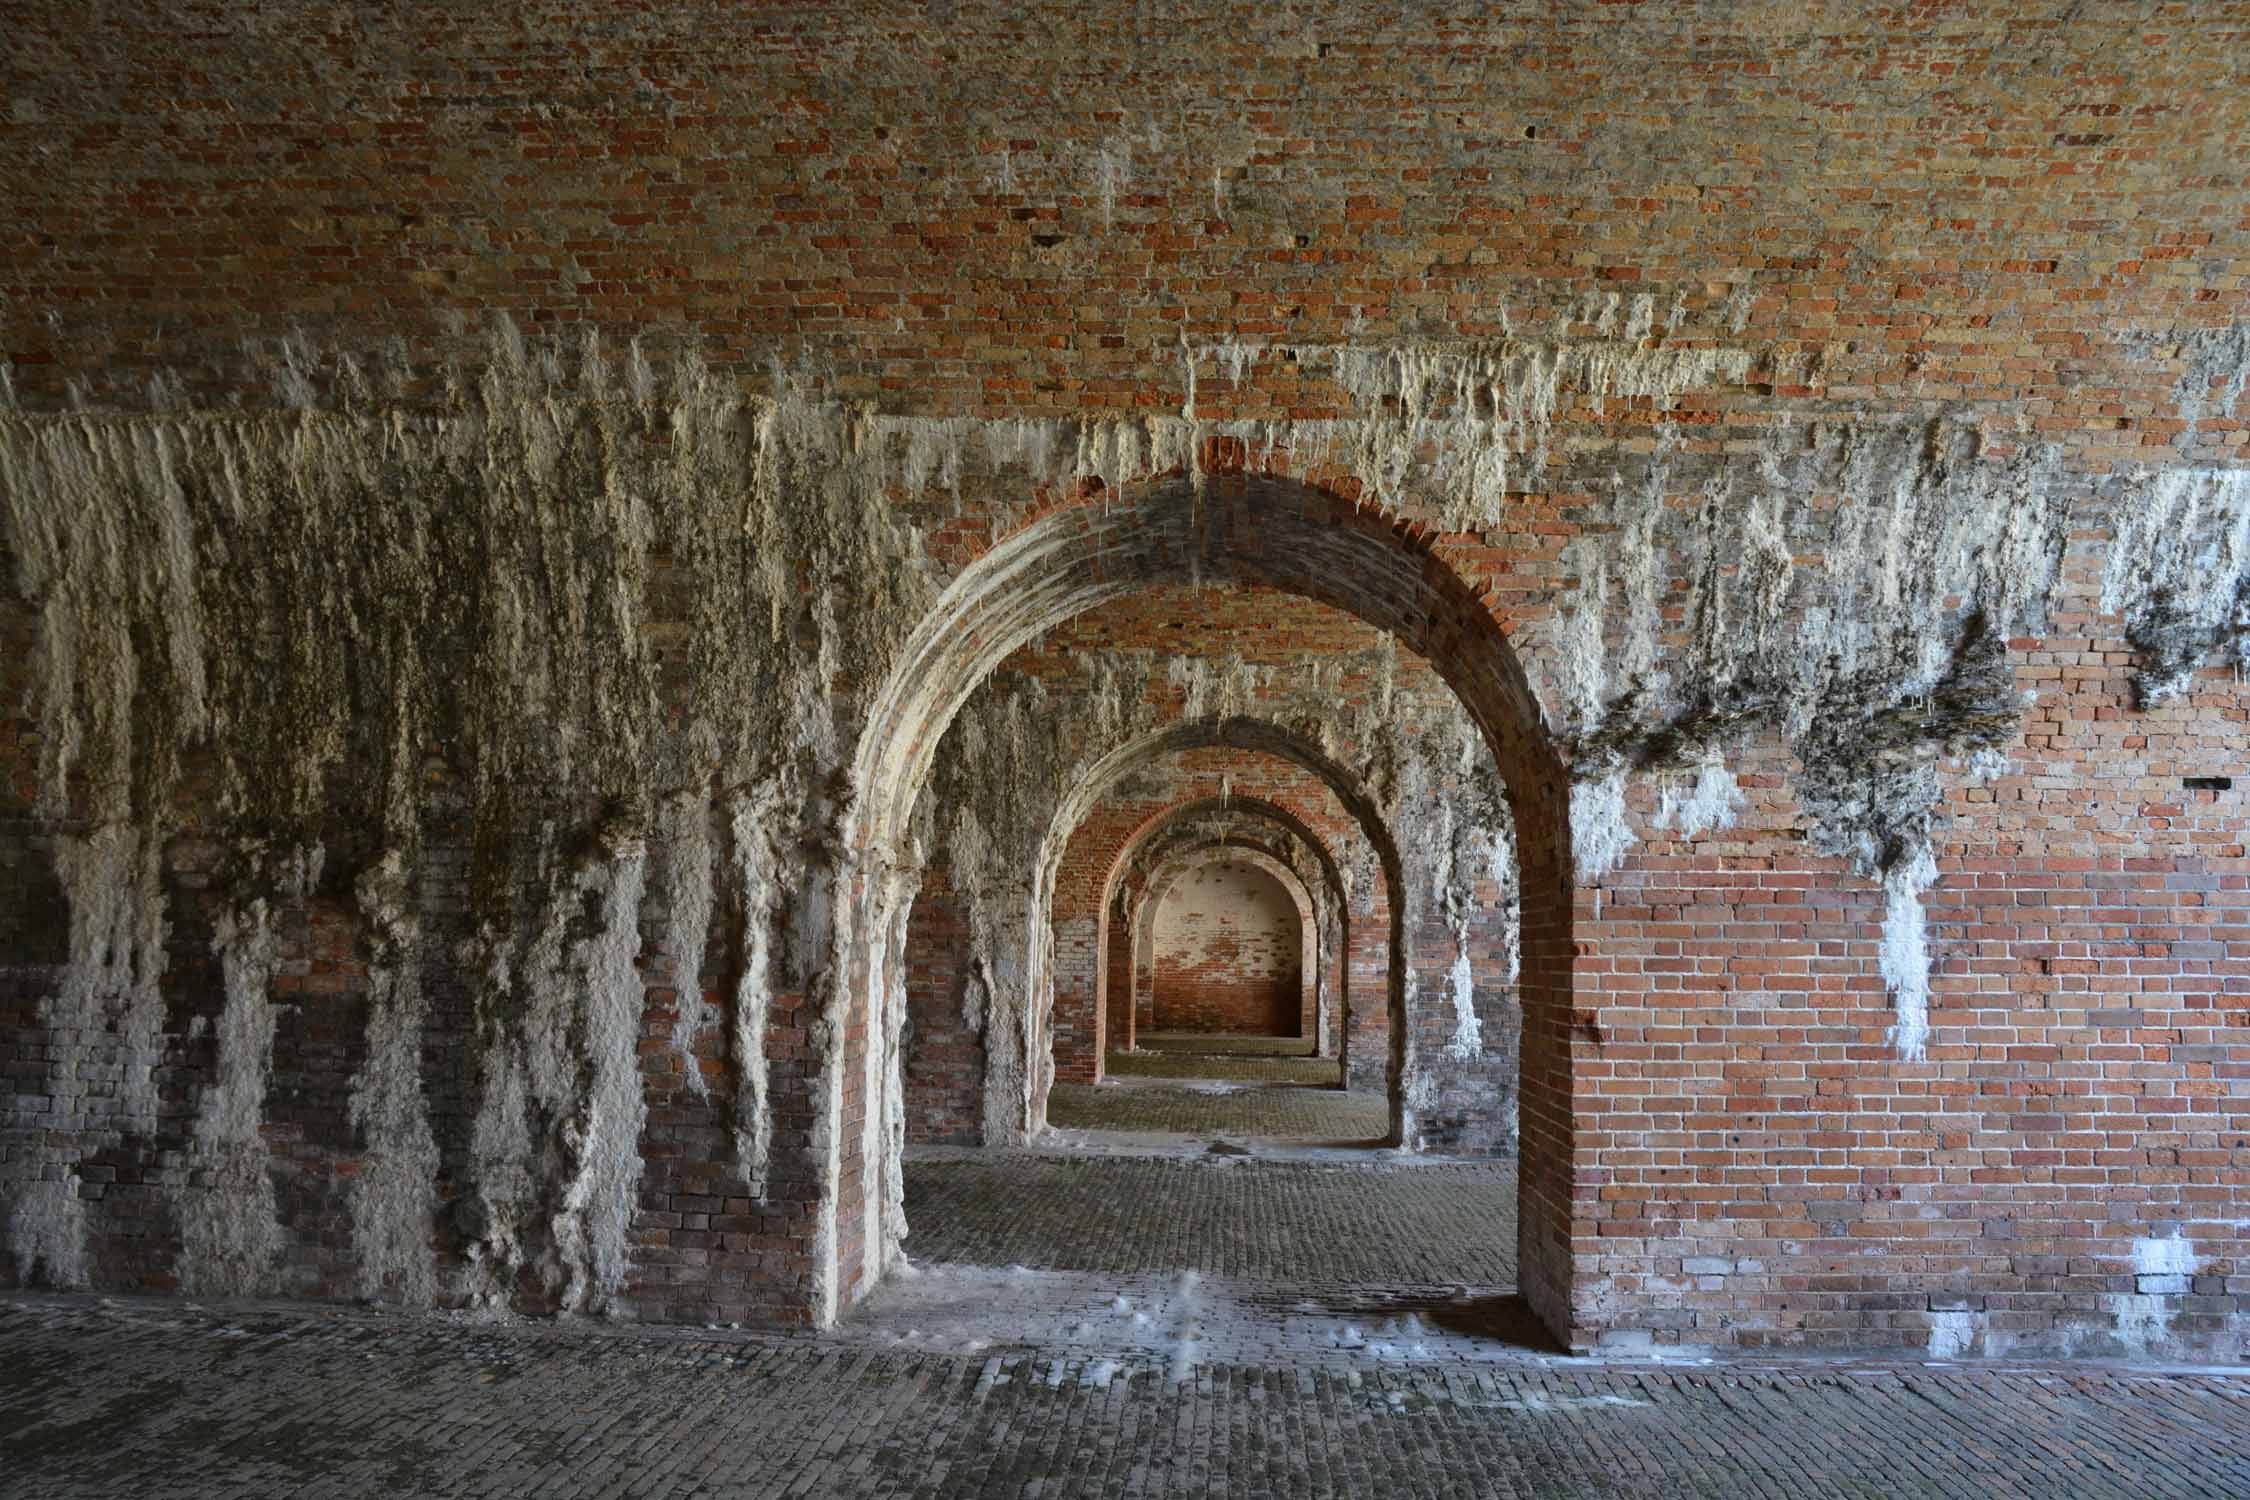 Fort Morgan has lots of brick and the aging process is spectular enhanced by the sea air of the Gulf of Mexico